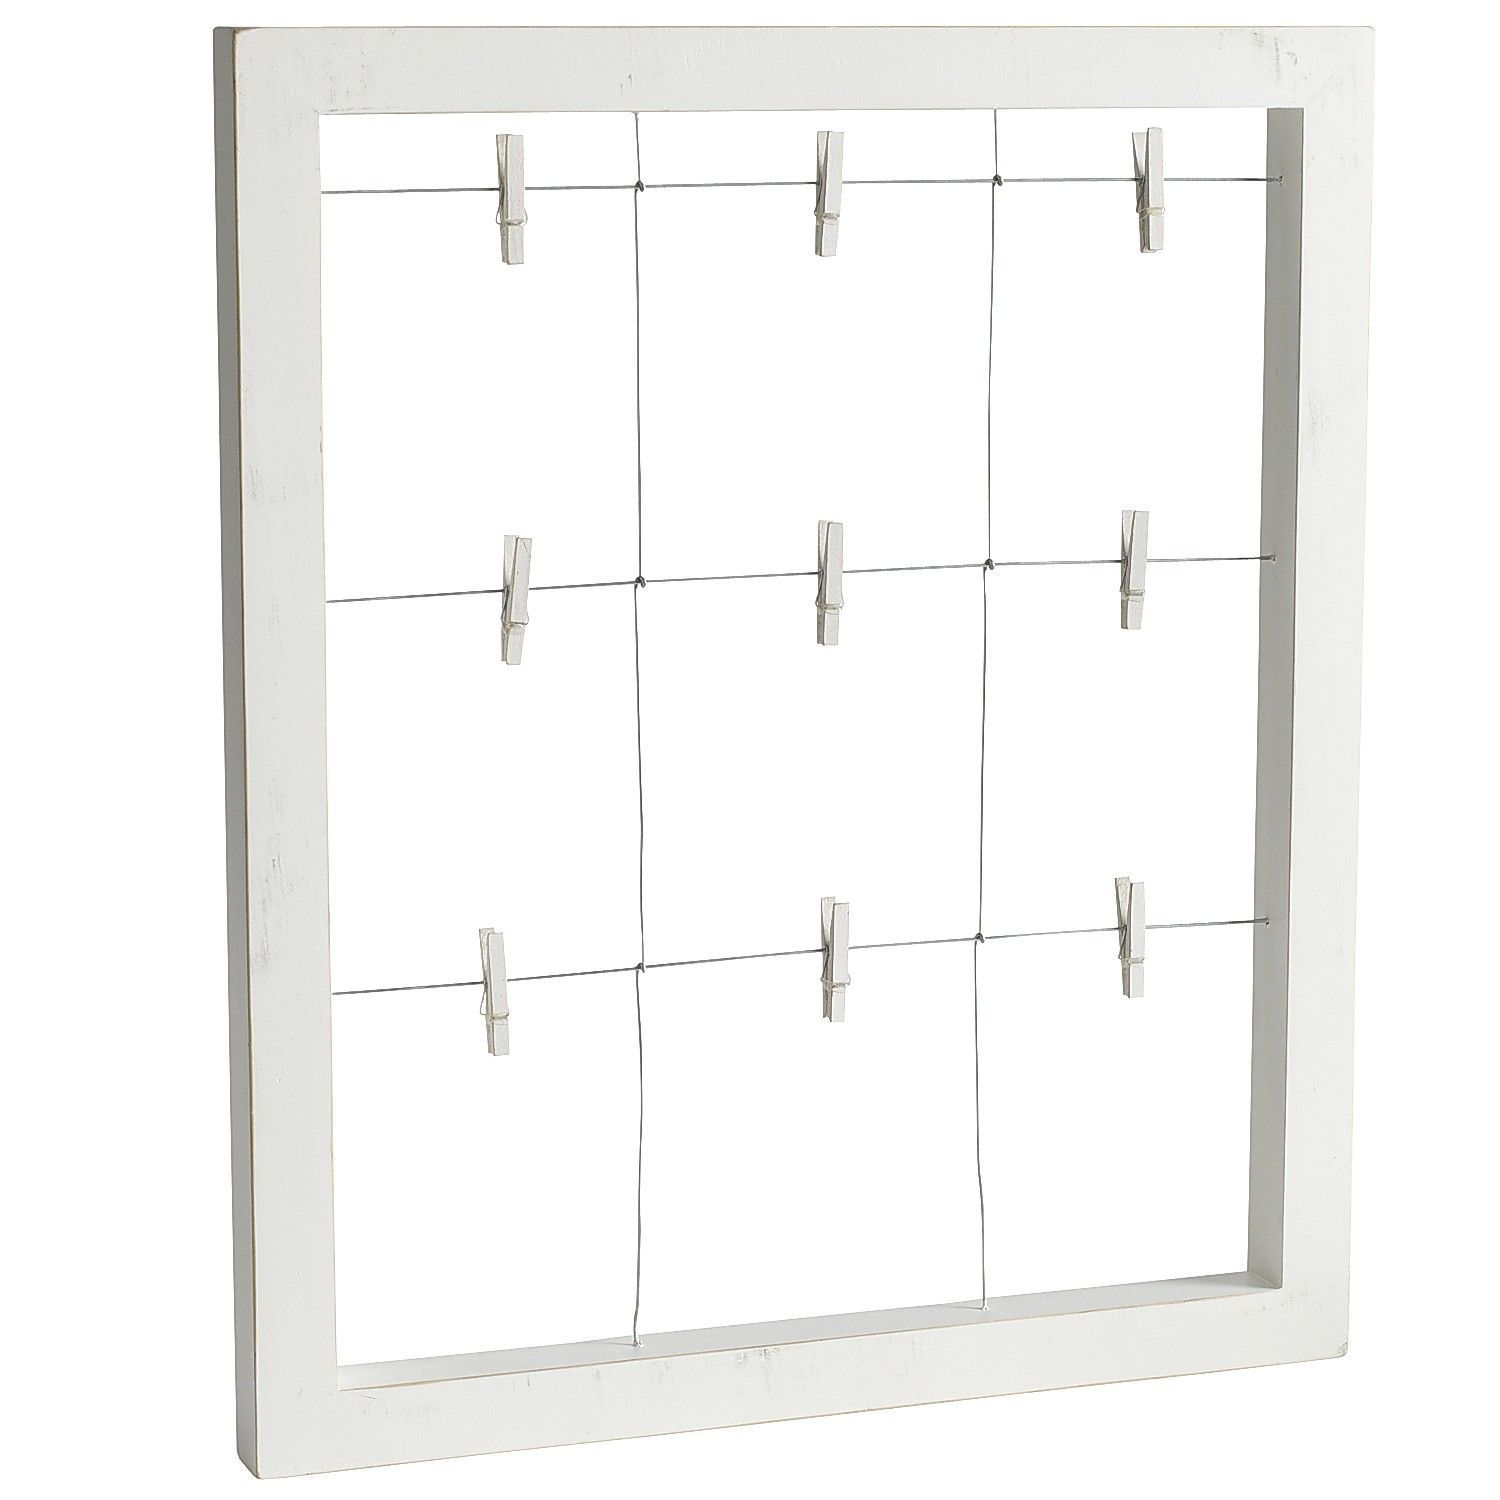 Clip It White Window Wall Frame A Wire Grid With Nine Metal Clips